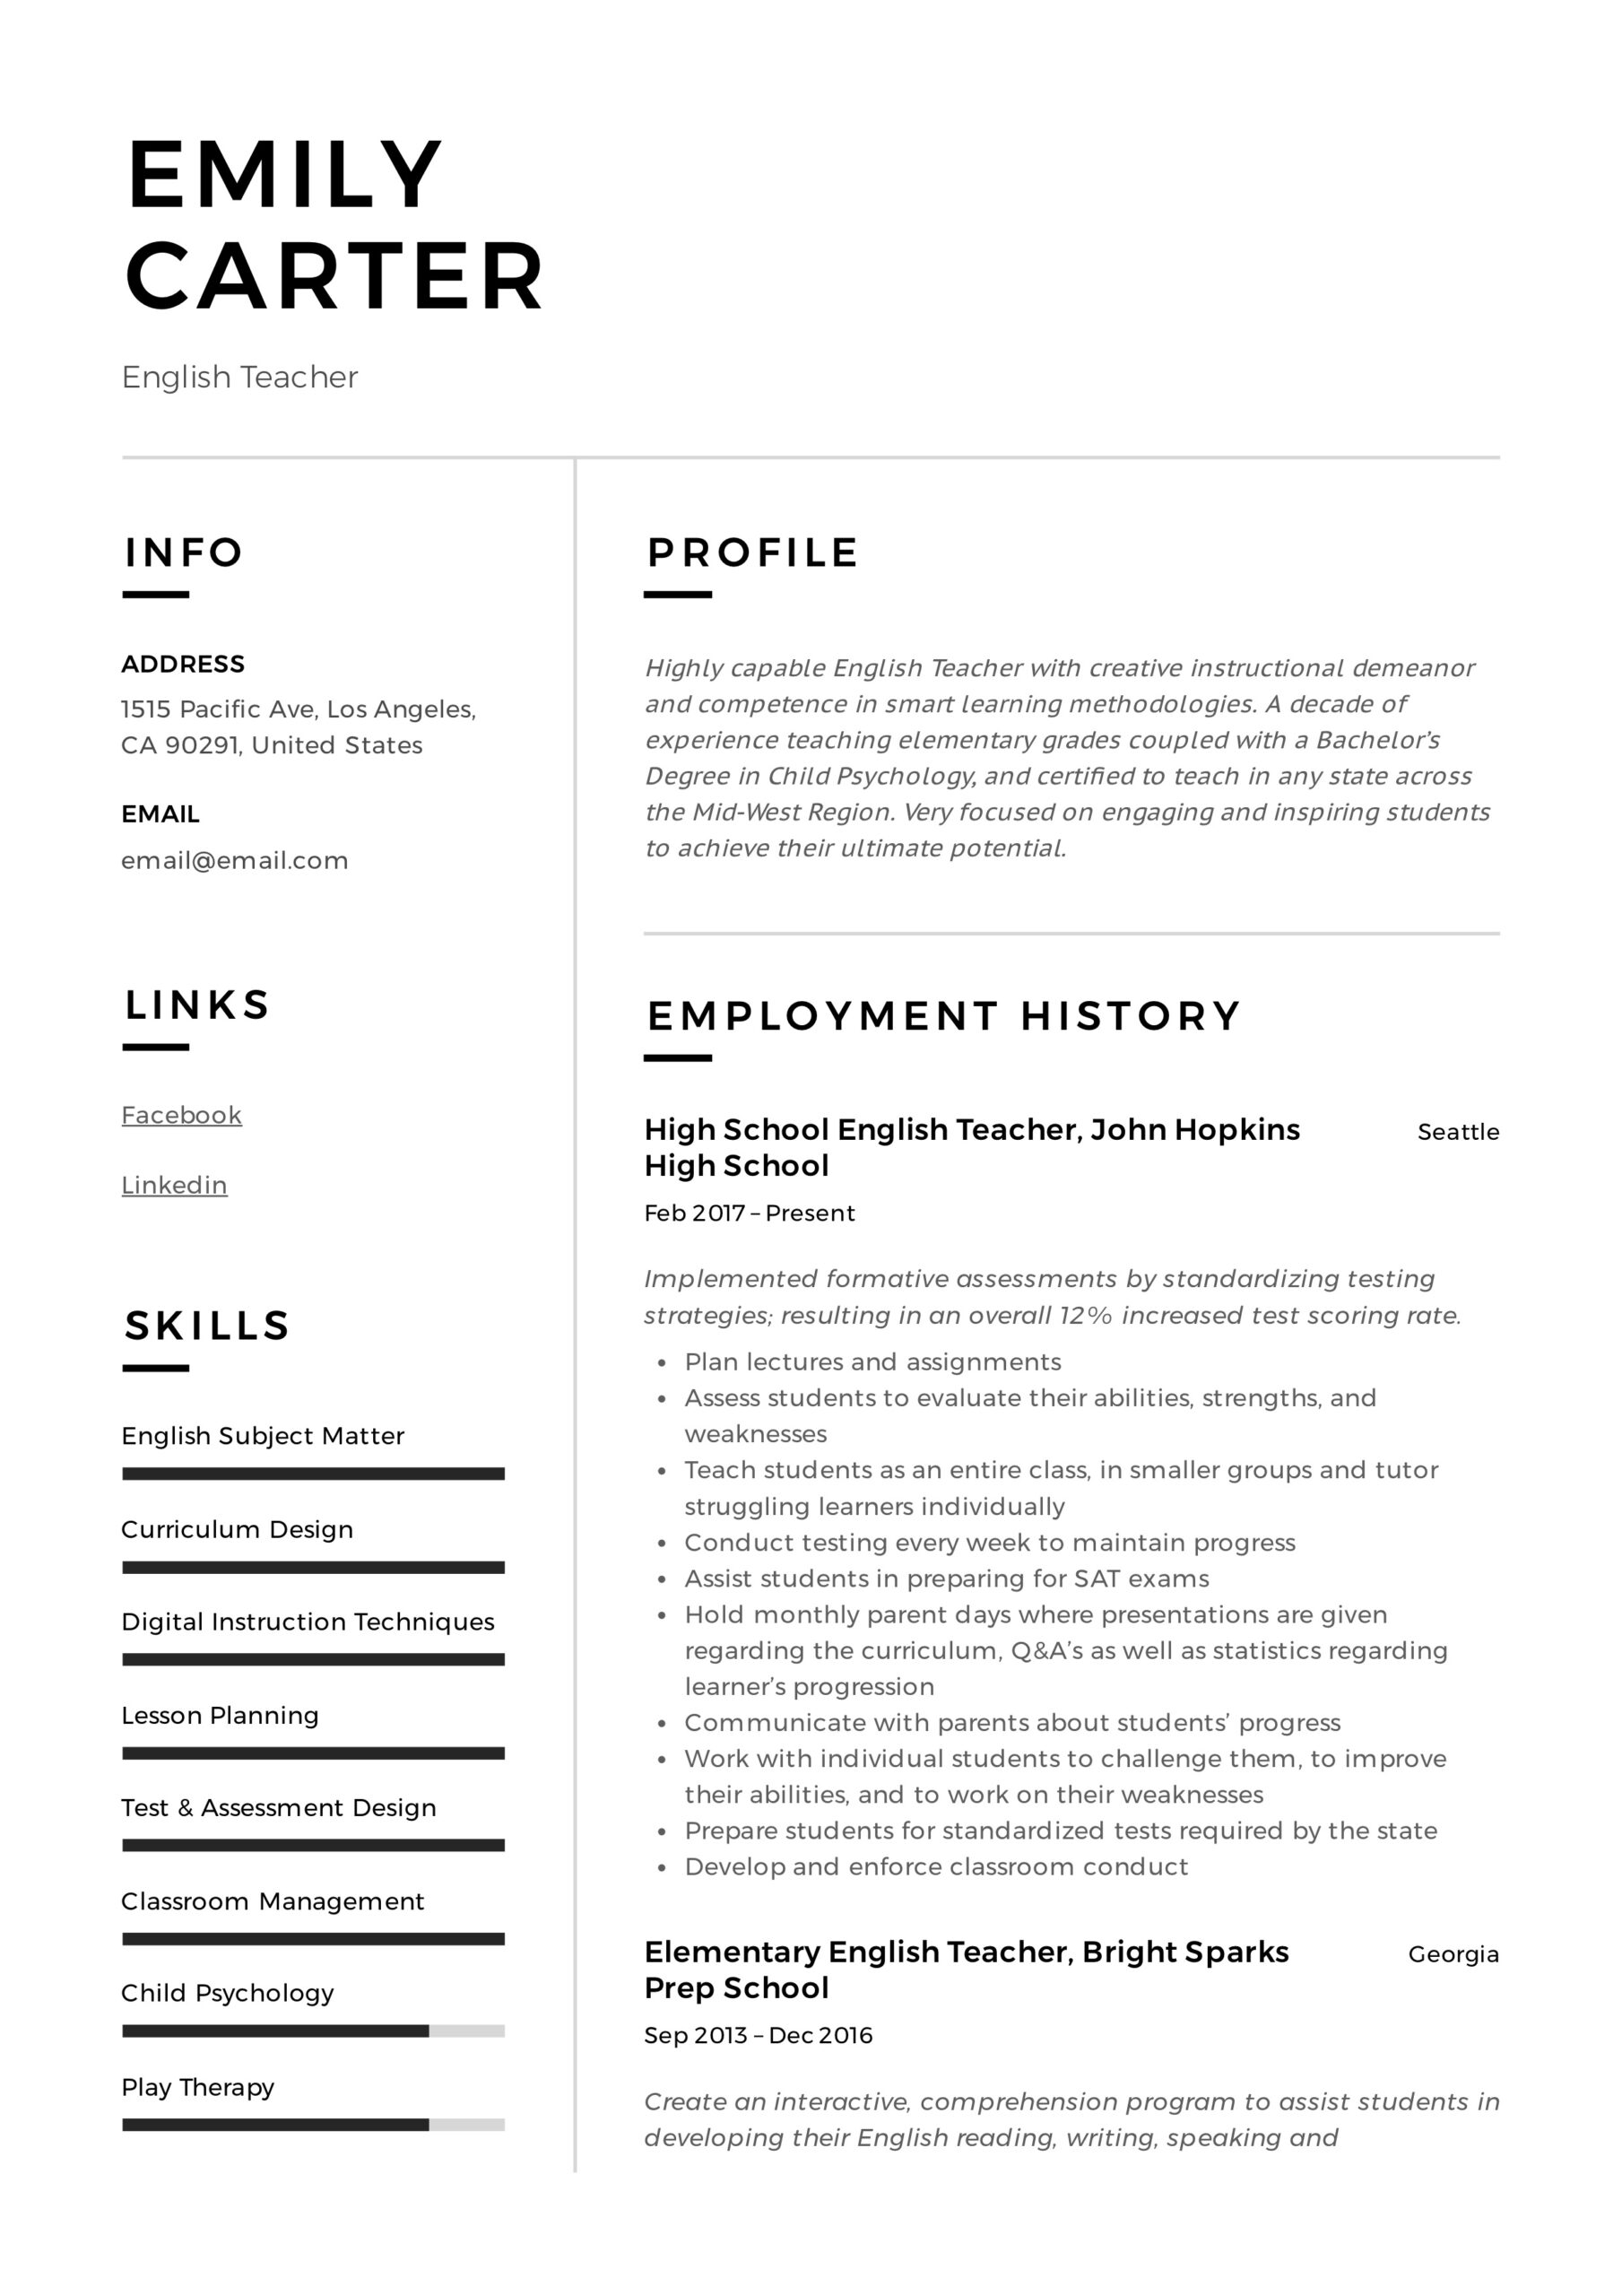 english teacher resume writing guide free templates sample of for high school emily Resume Sample Resume Of English Teacher For High School